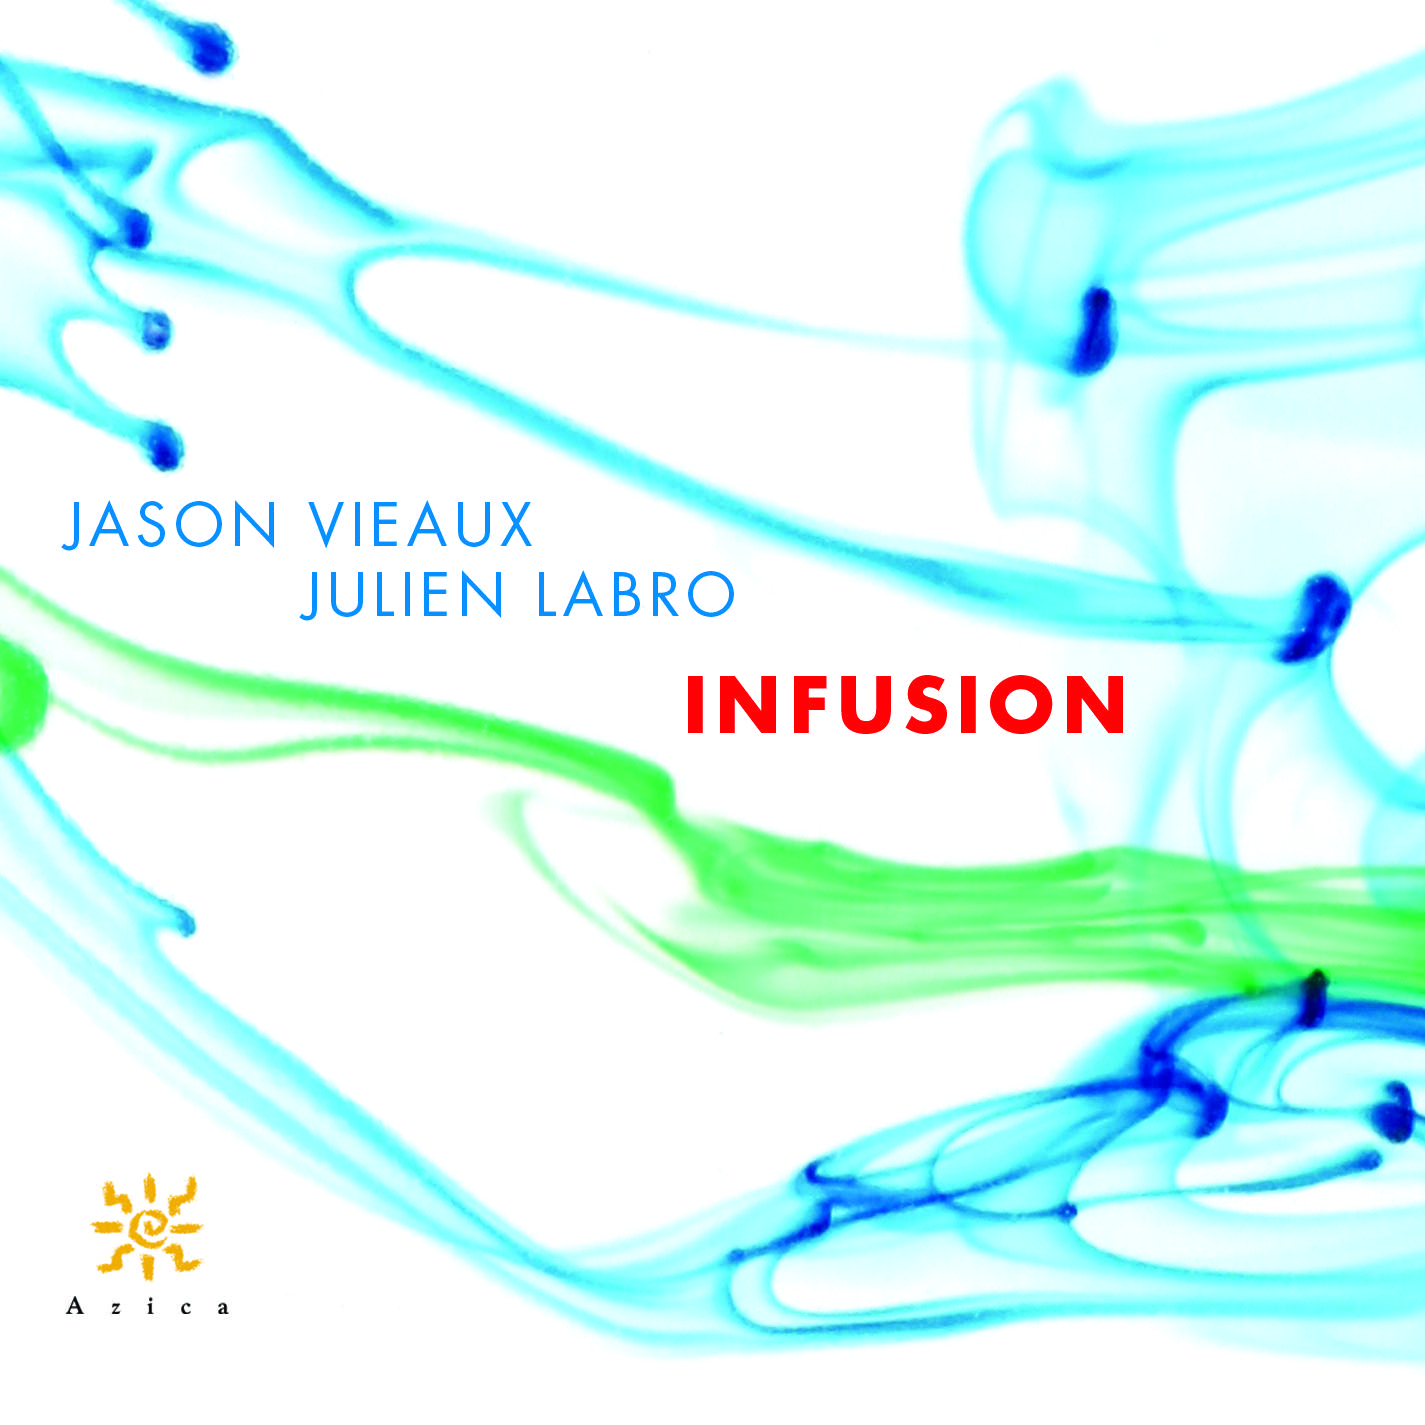 Jason Vieaux and Julien Labro, 'Infusion'